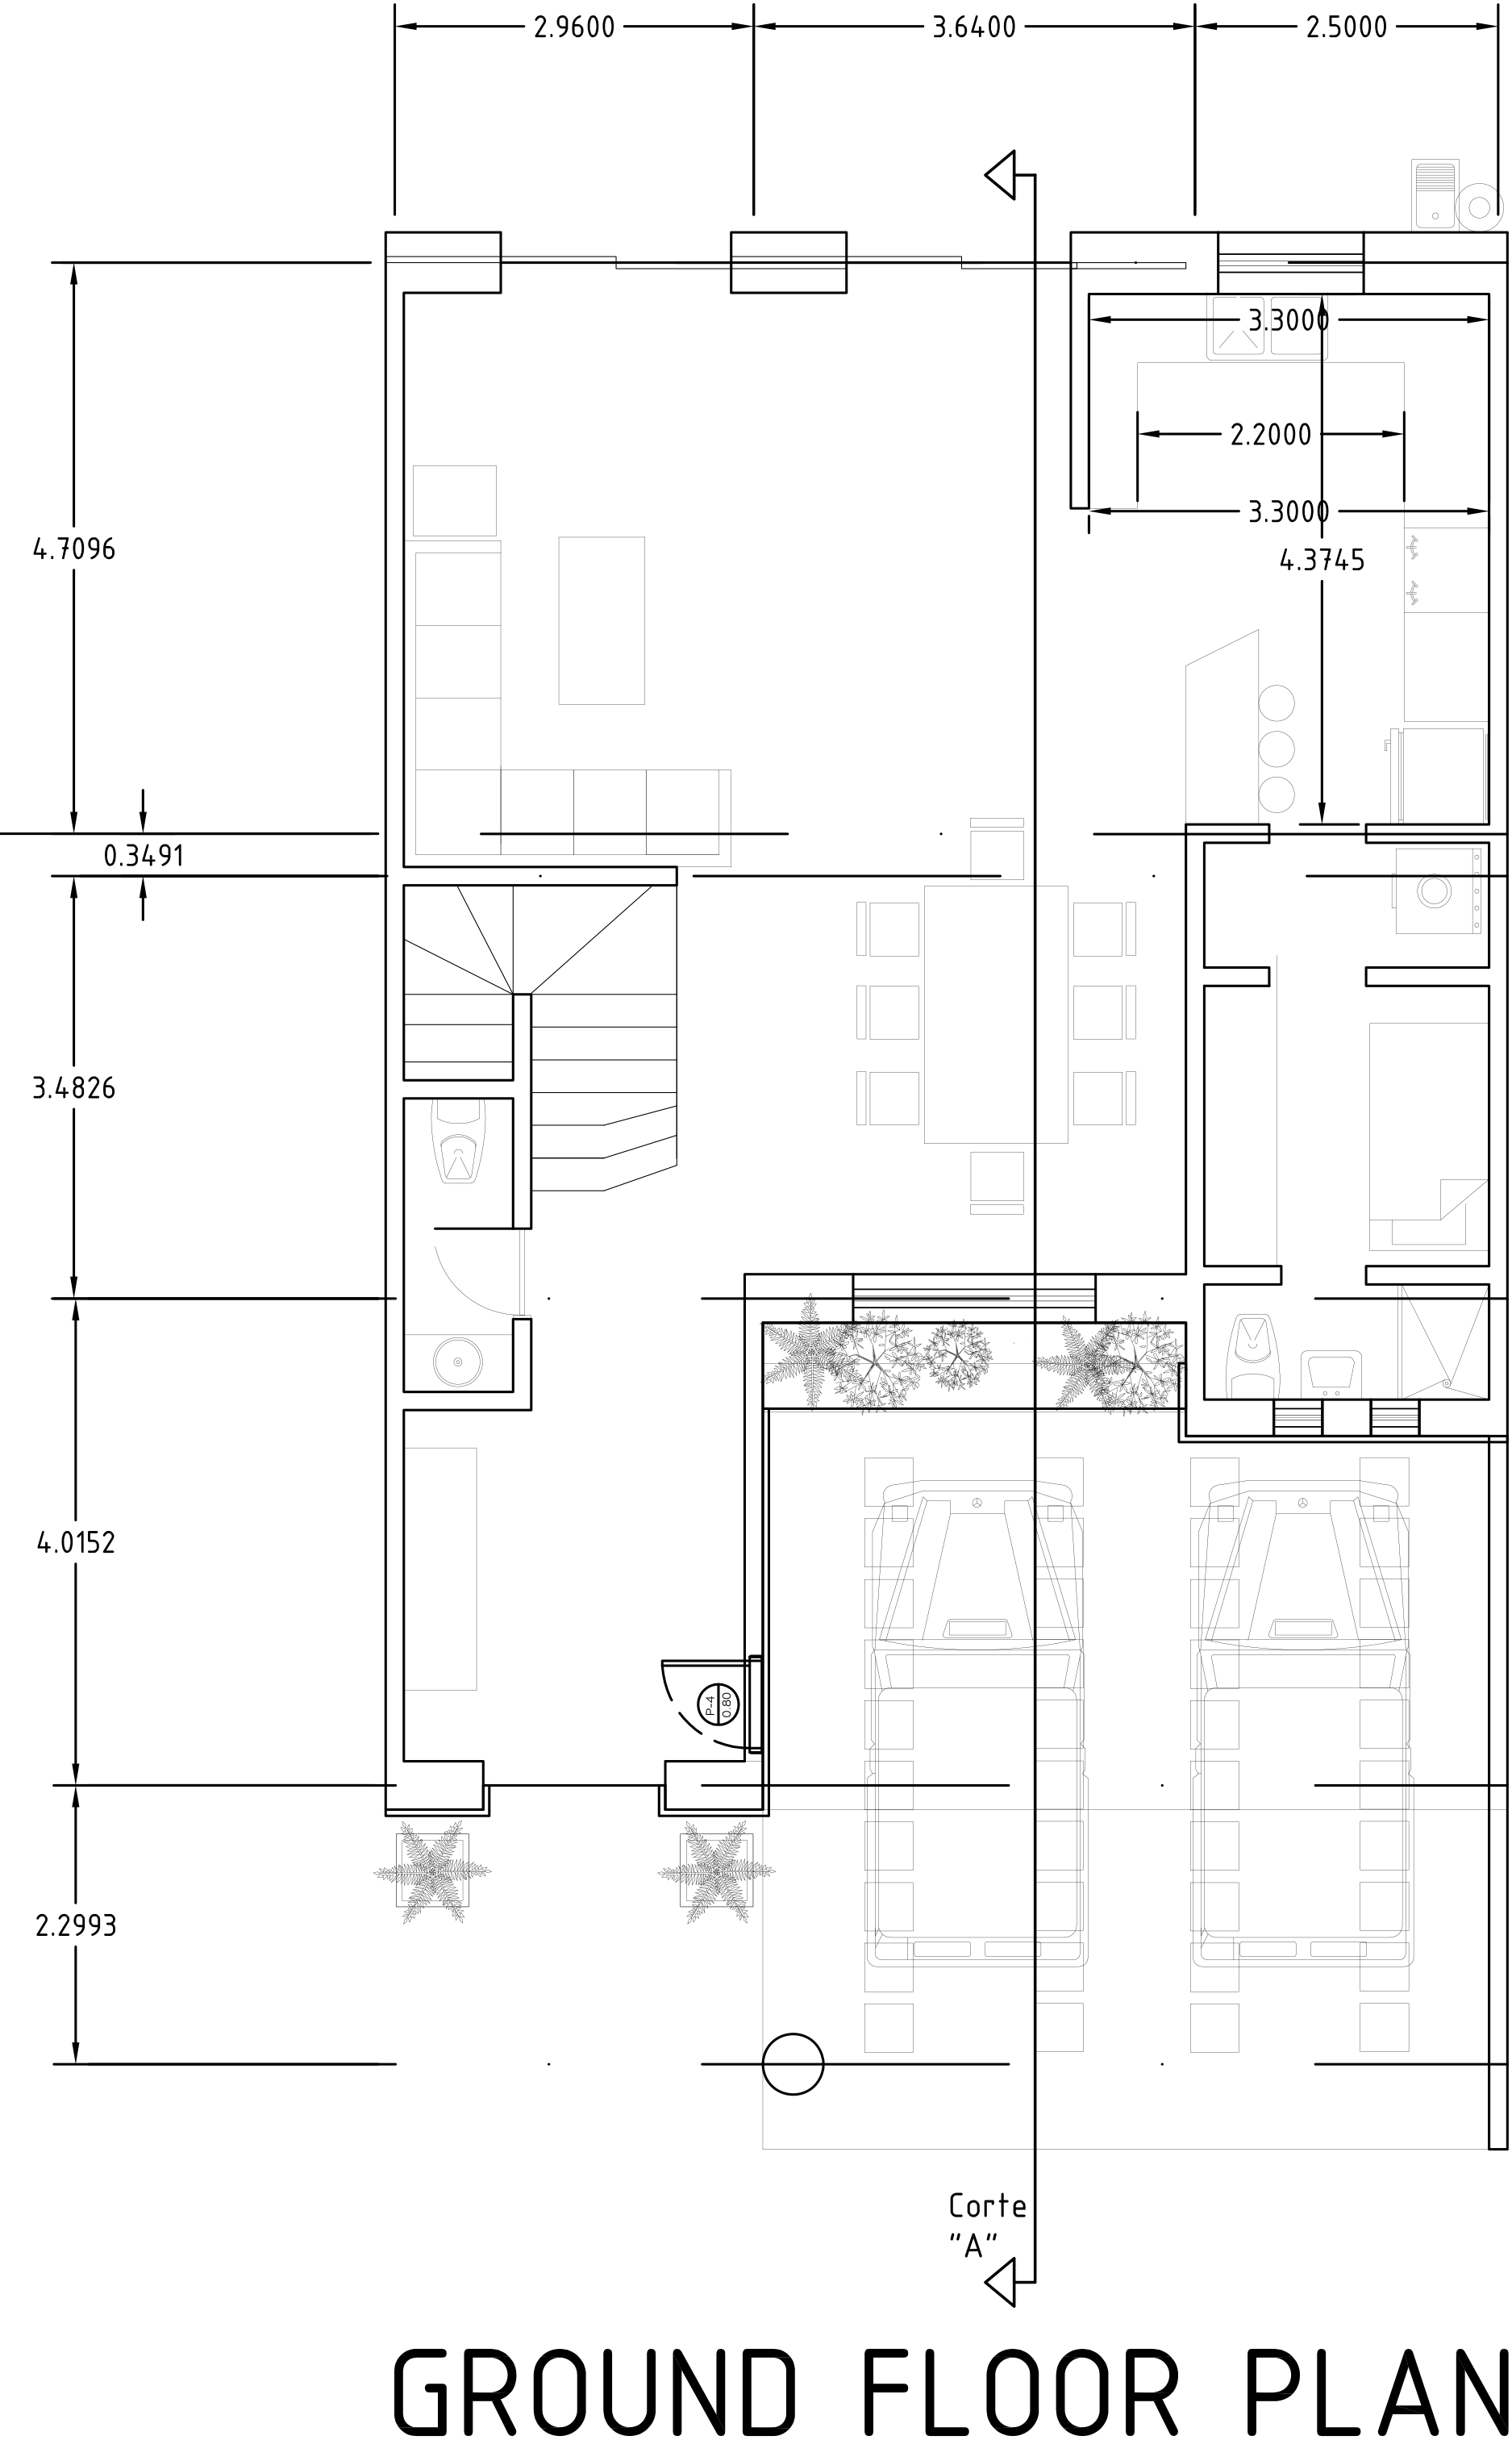 Drawing plan ground floor. Three bed room double